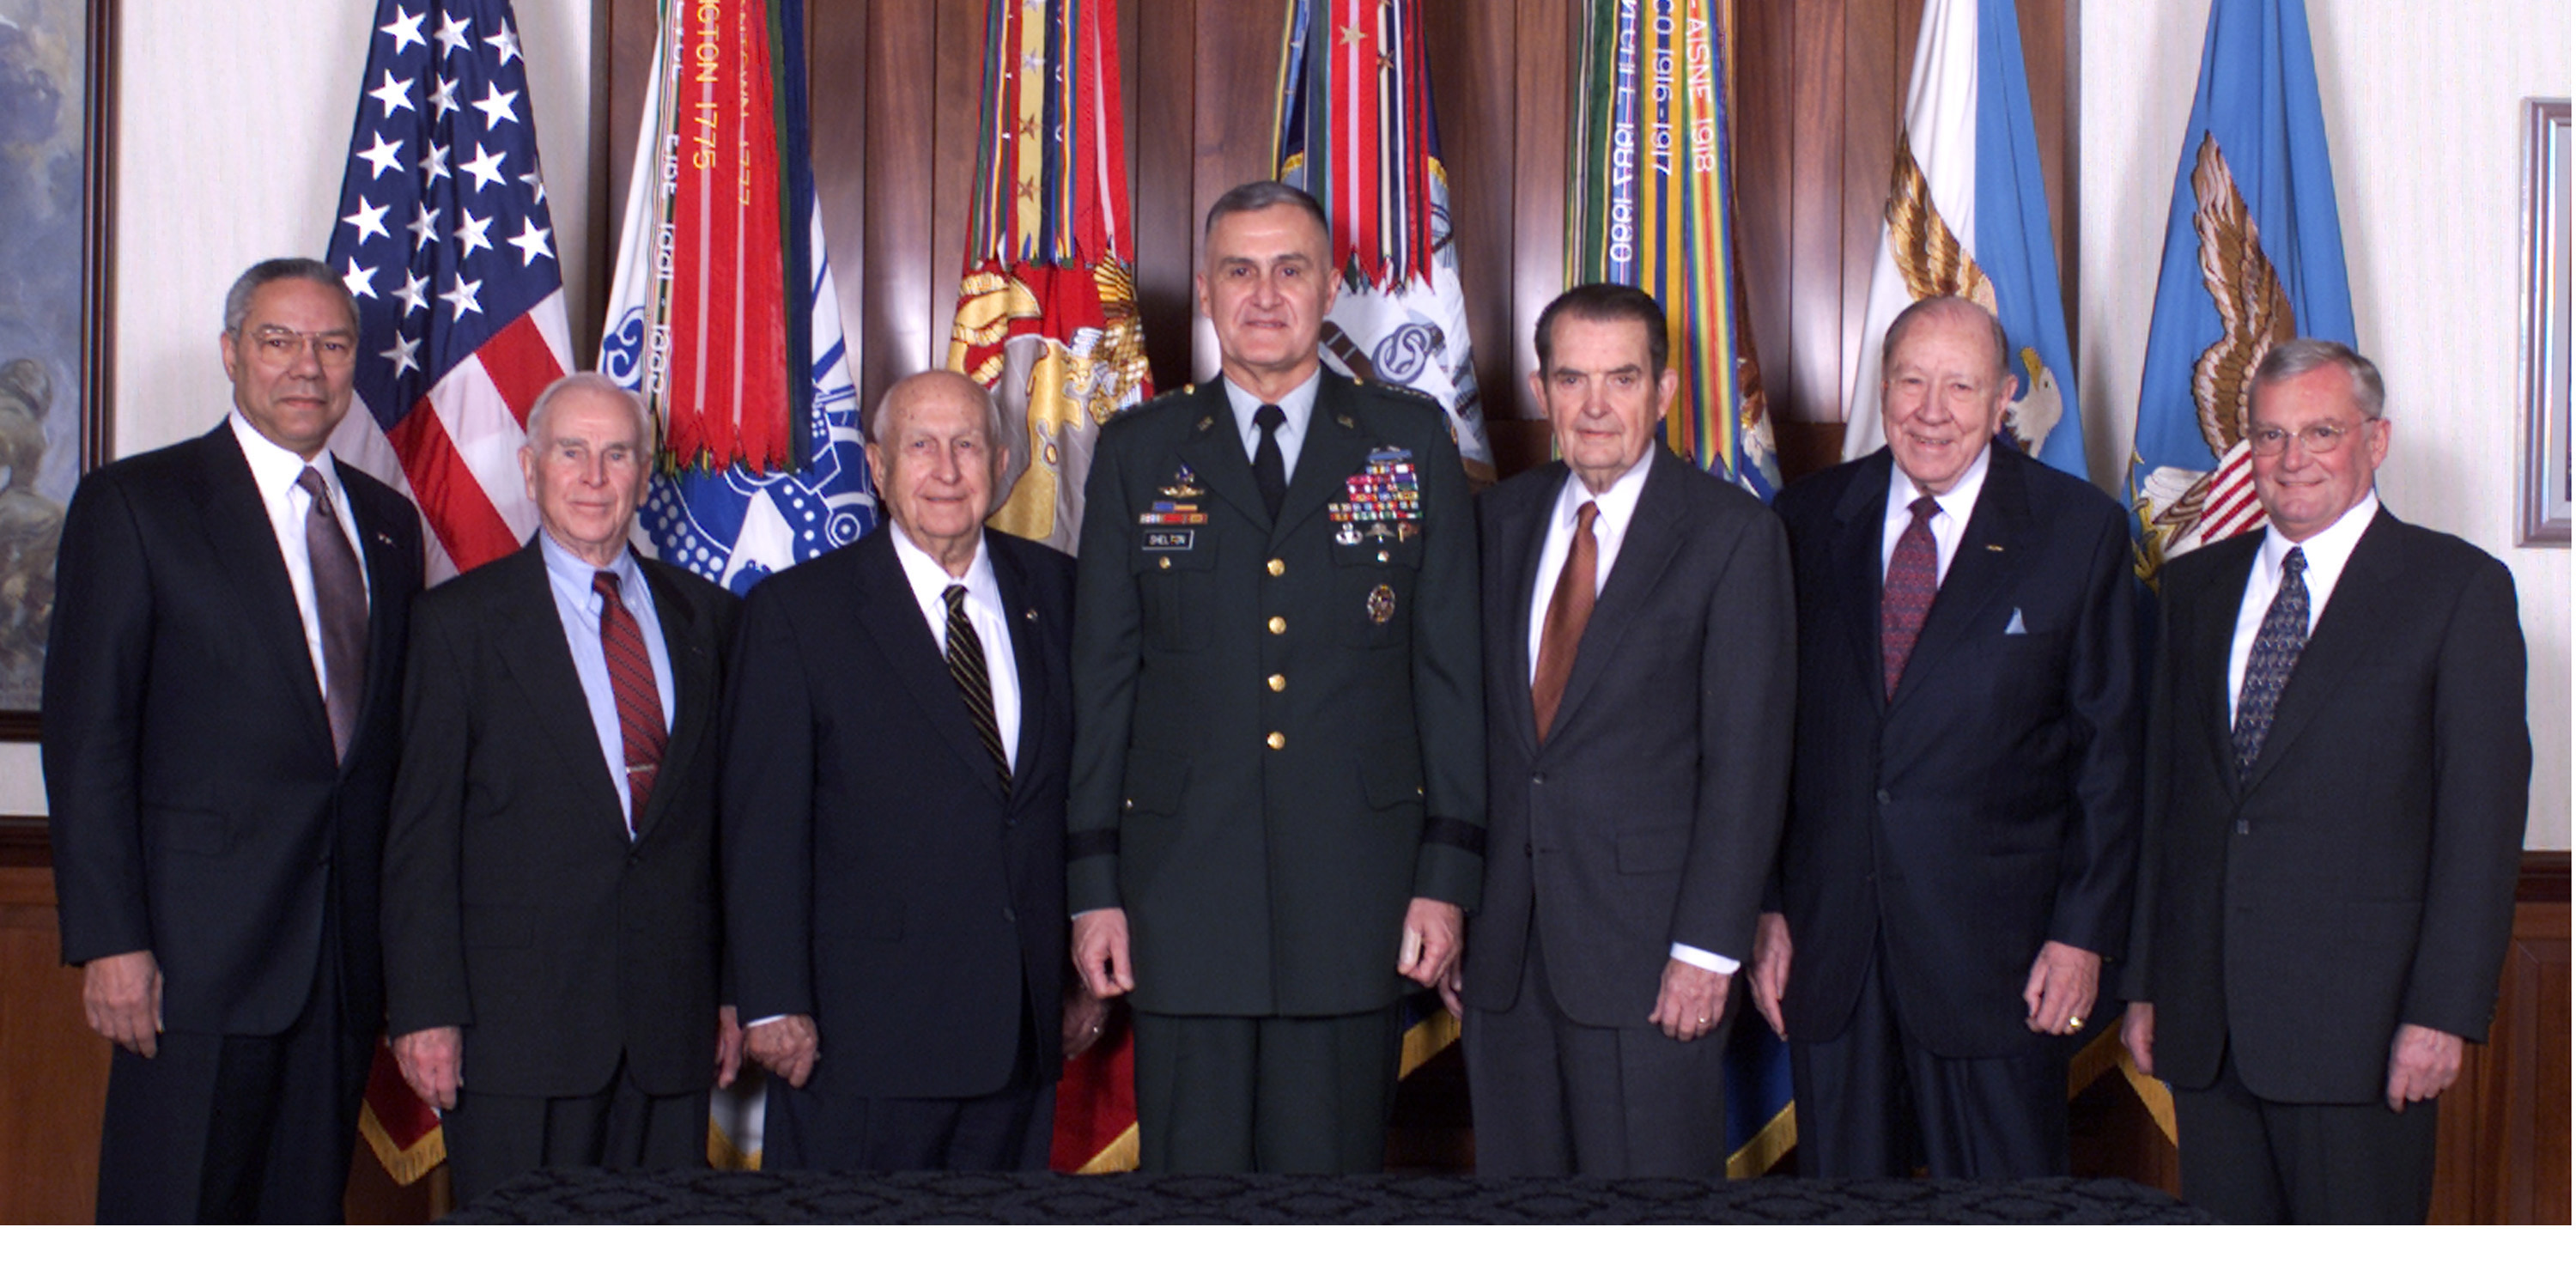 Chairman of the joint chiefs of staff wikiwand for Chair joint chiefs of staff